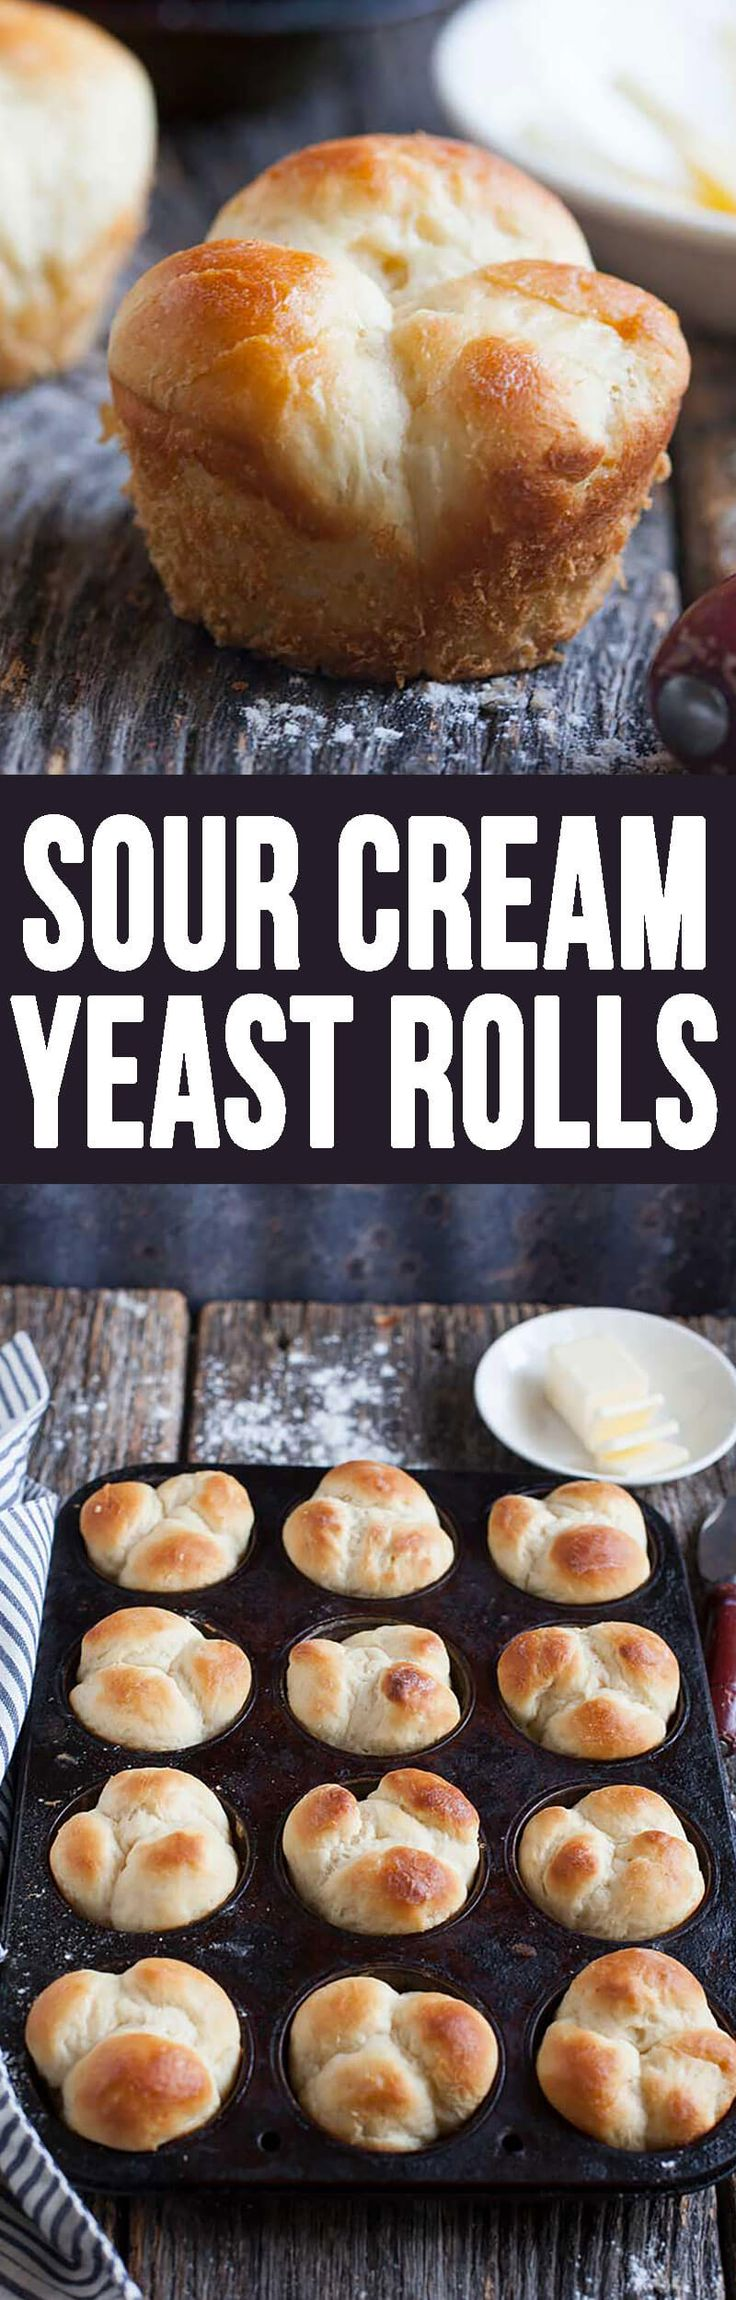 Sour Cream Yeast Rolls are perfect to go with your soup all Fall long, as well as the best side at Thanksgiving dinner!